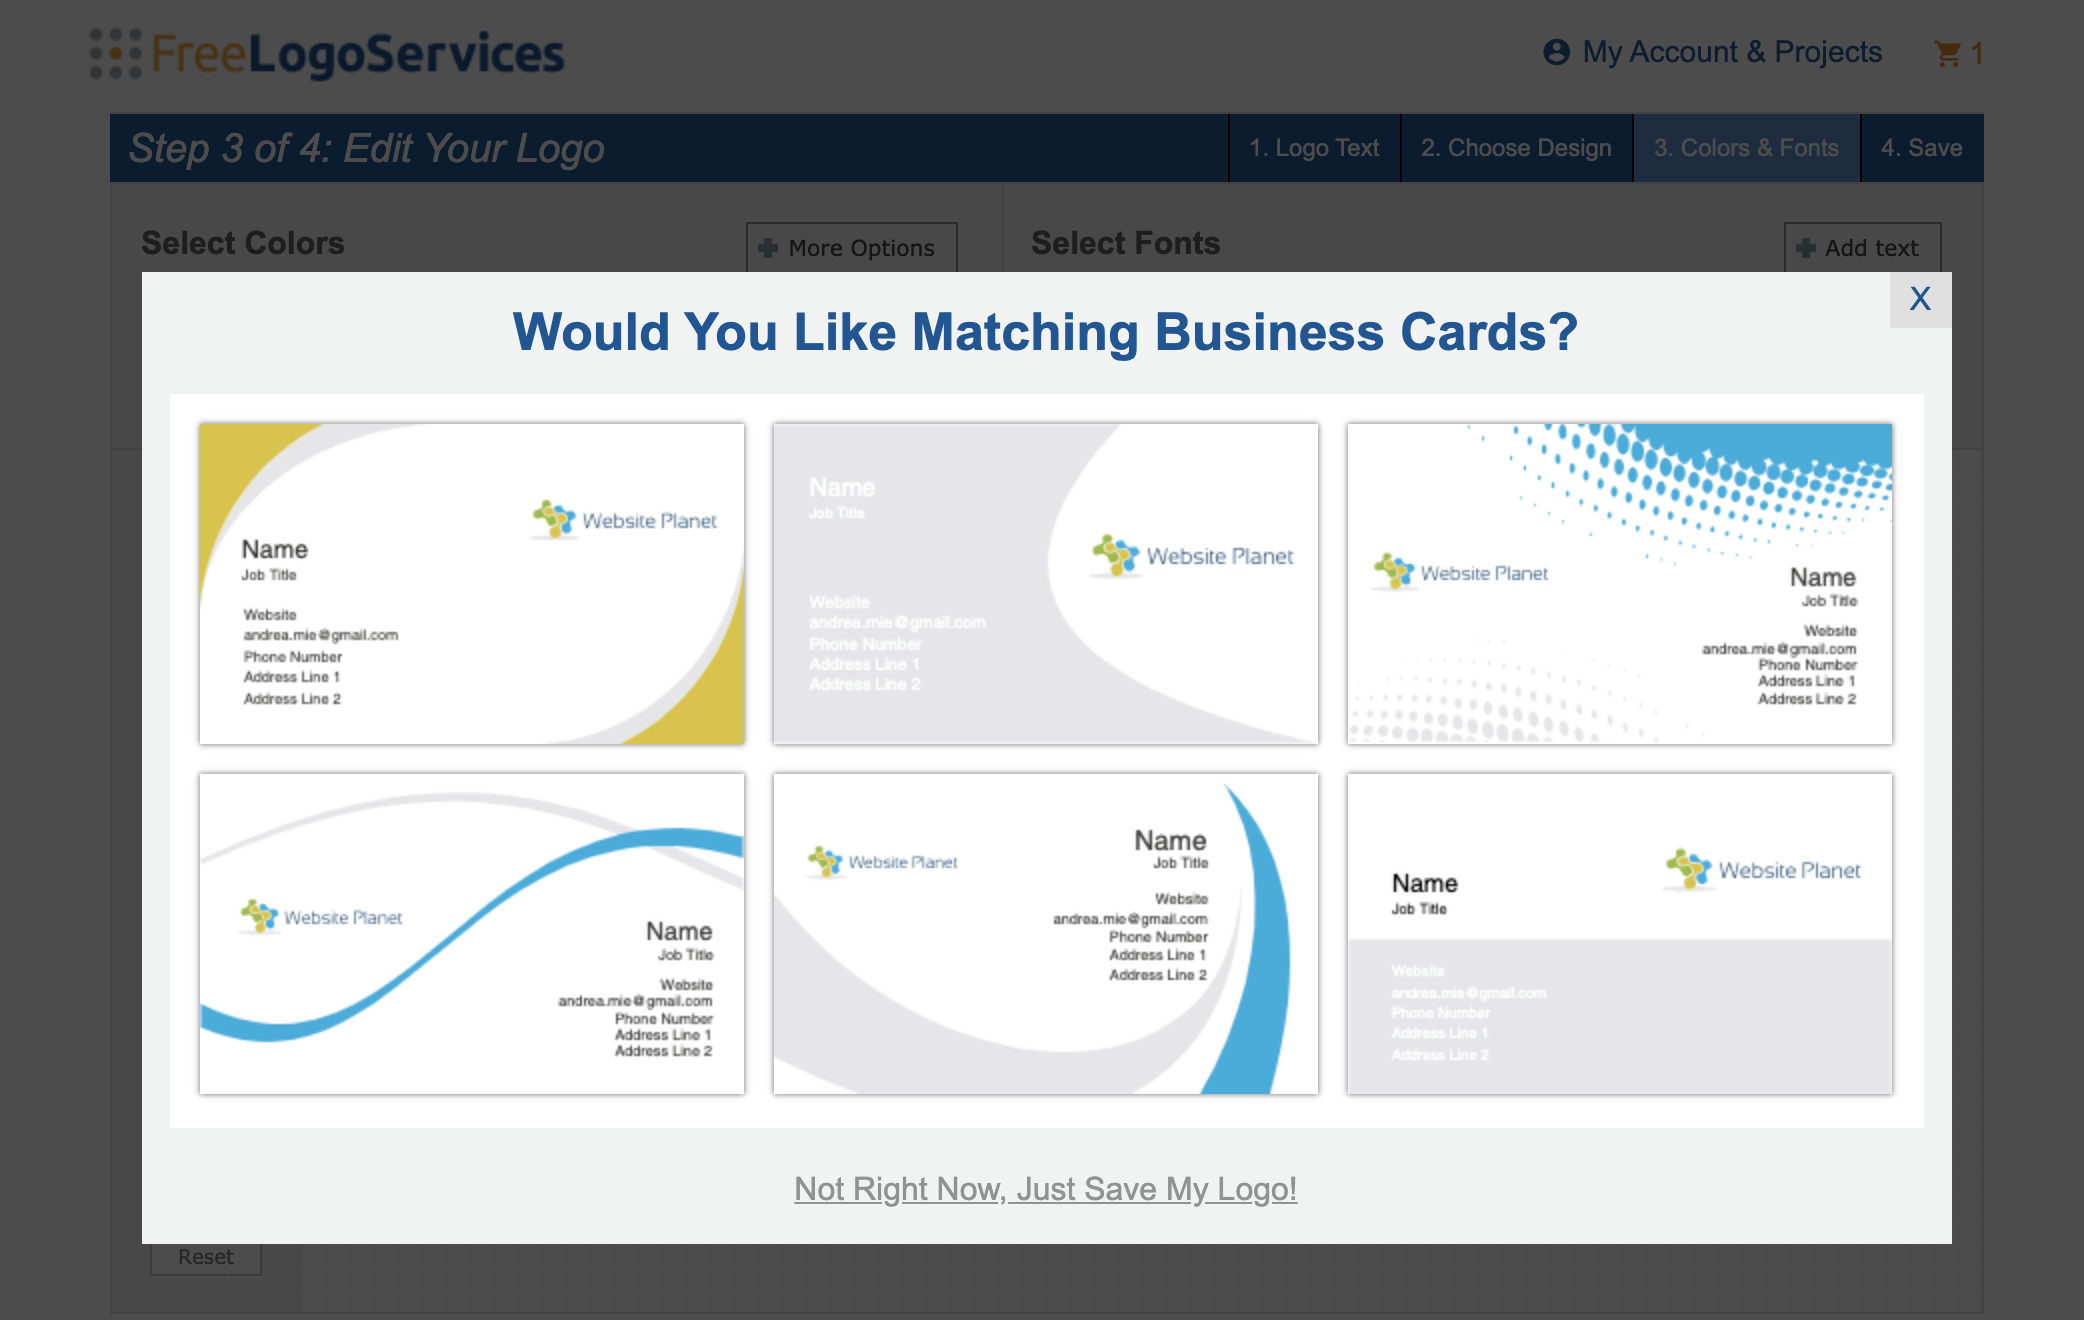 FreeLogoServices screenshot - Matching business cards